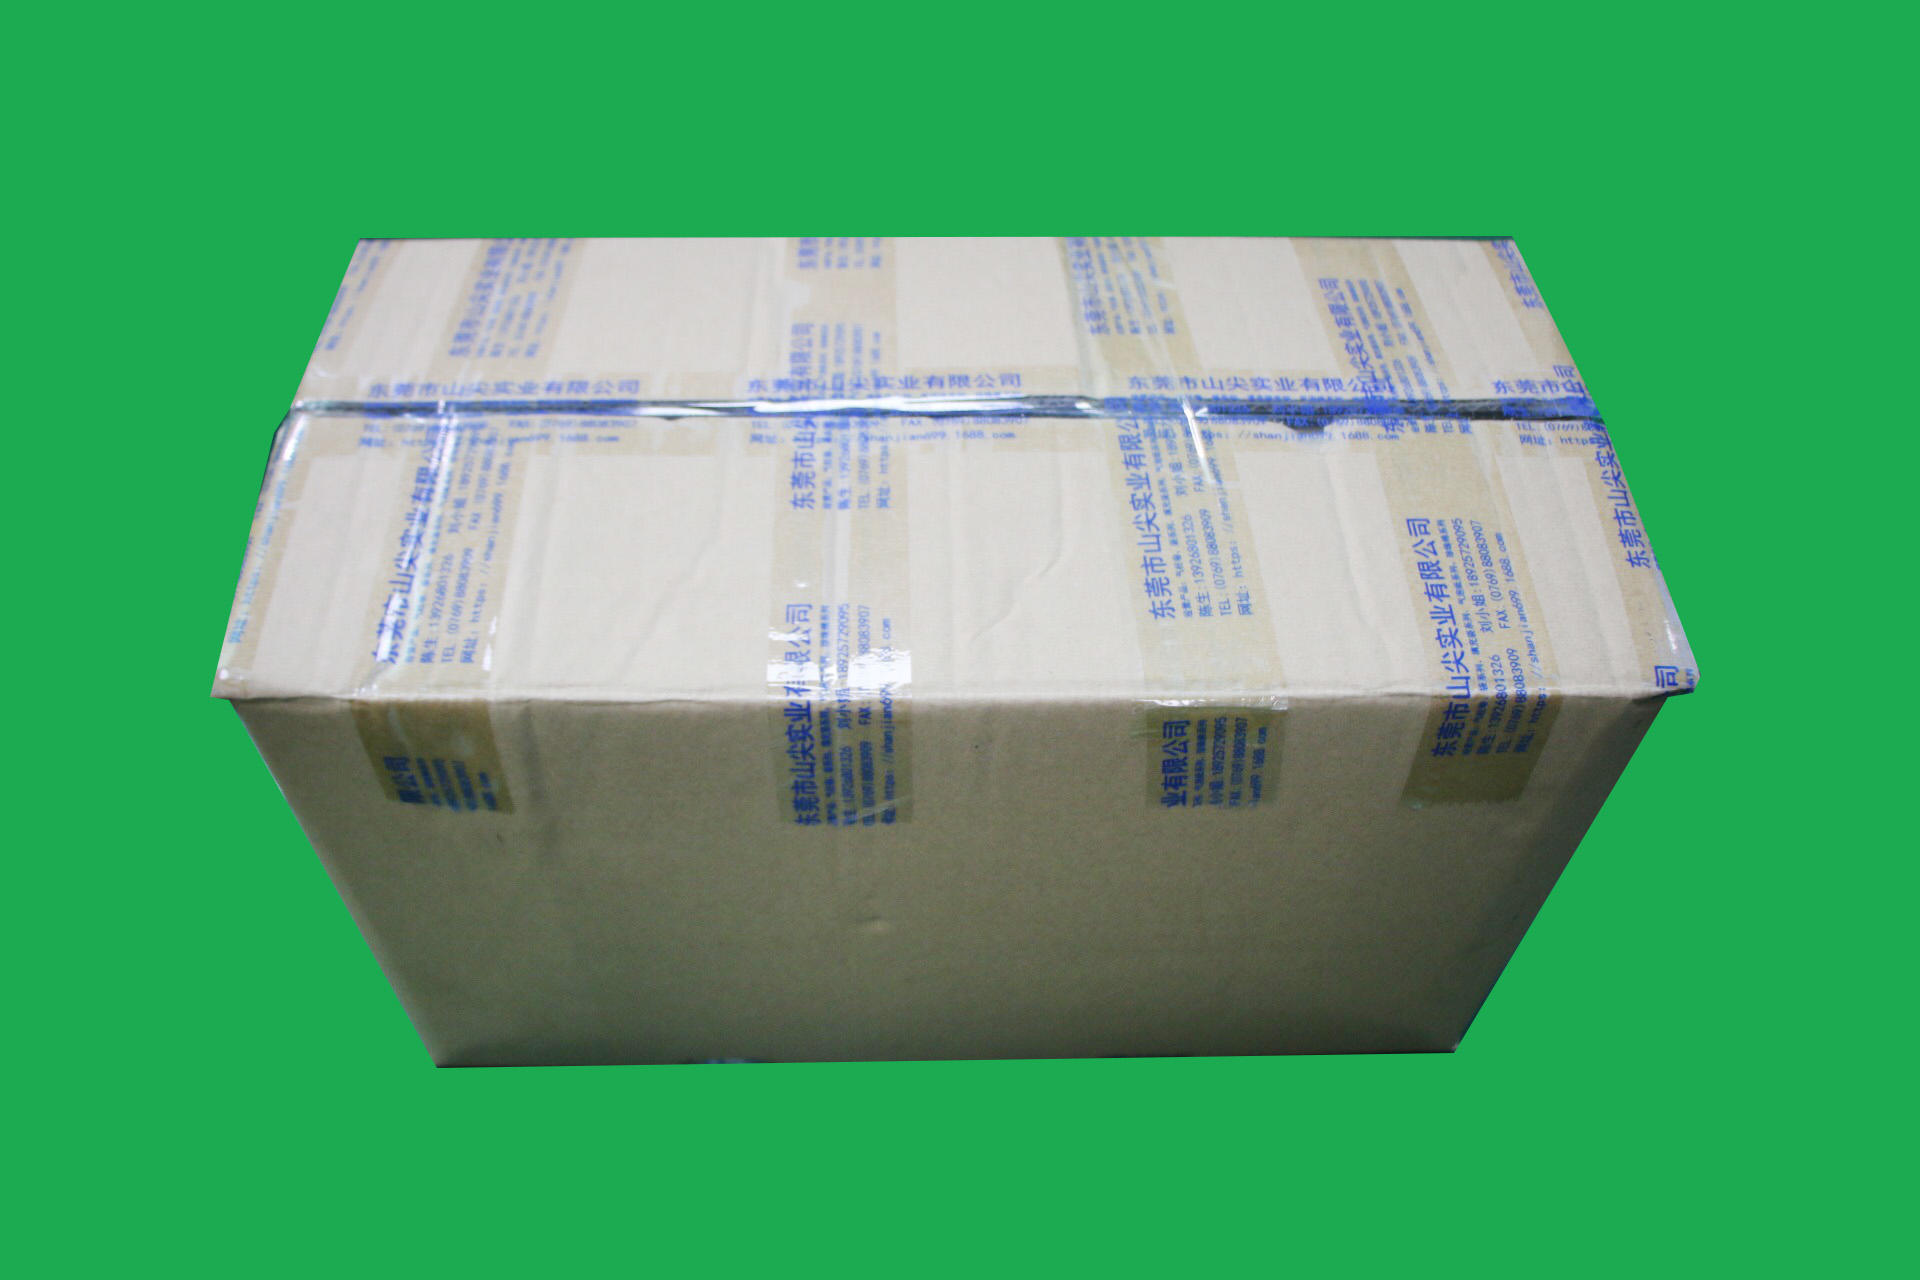 Sunshinepack High-quality airpack india factory for delivery